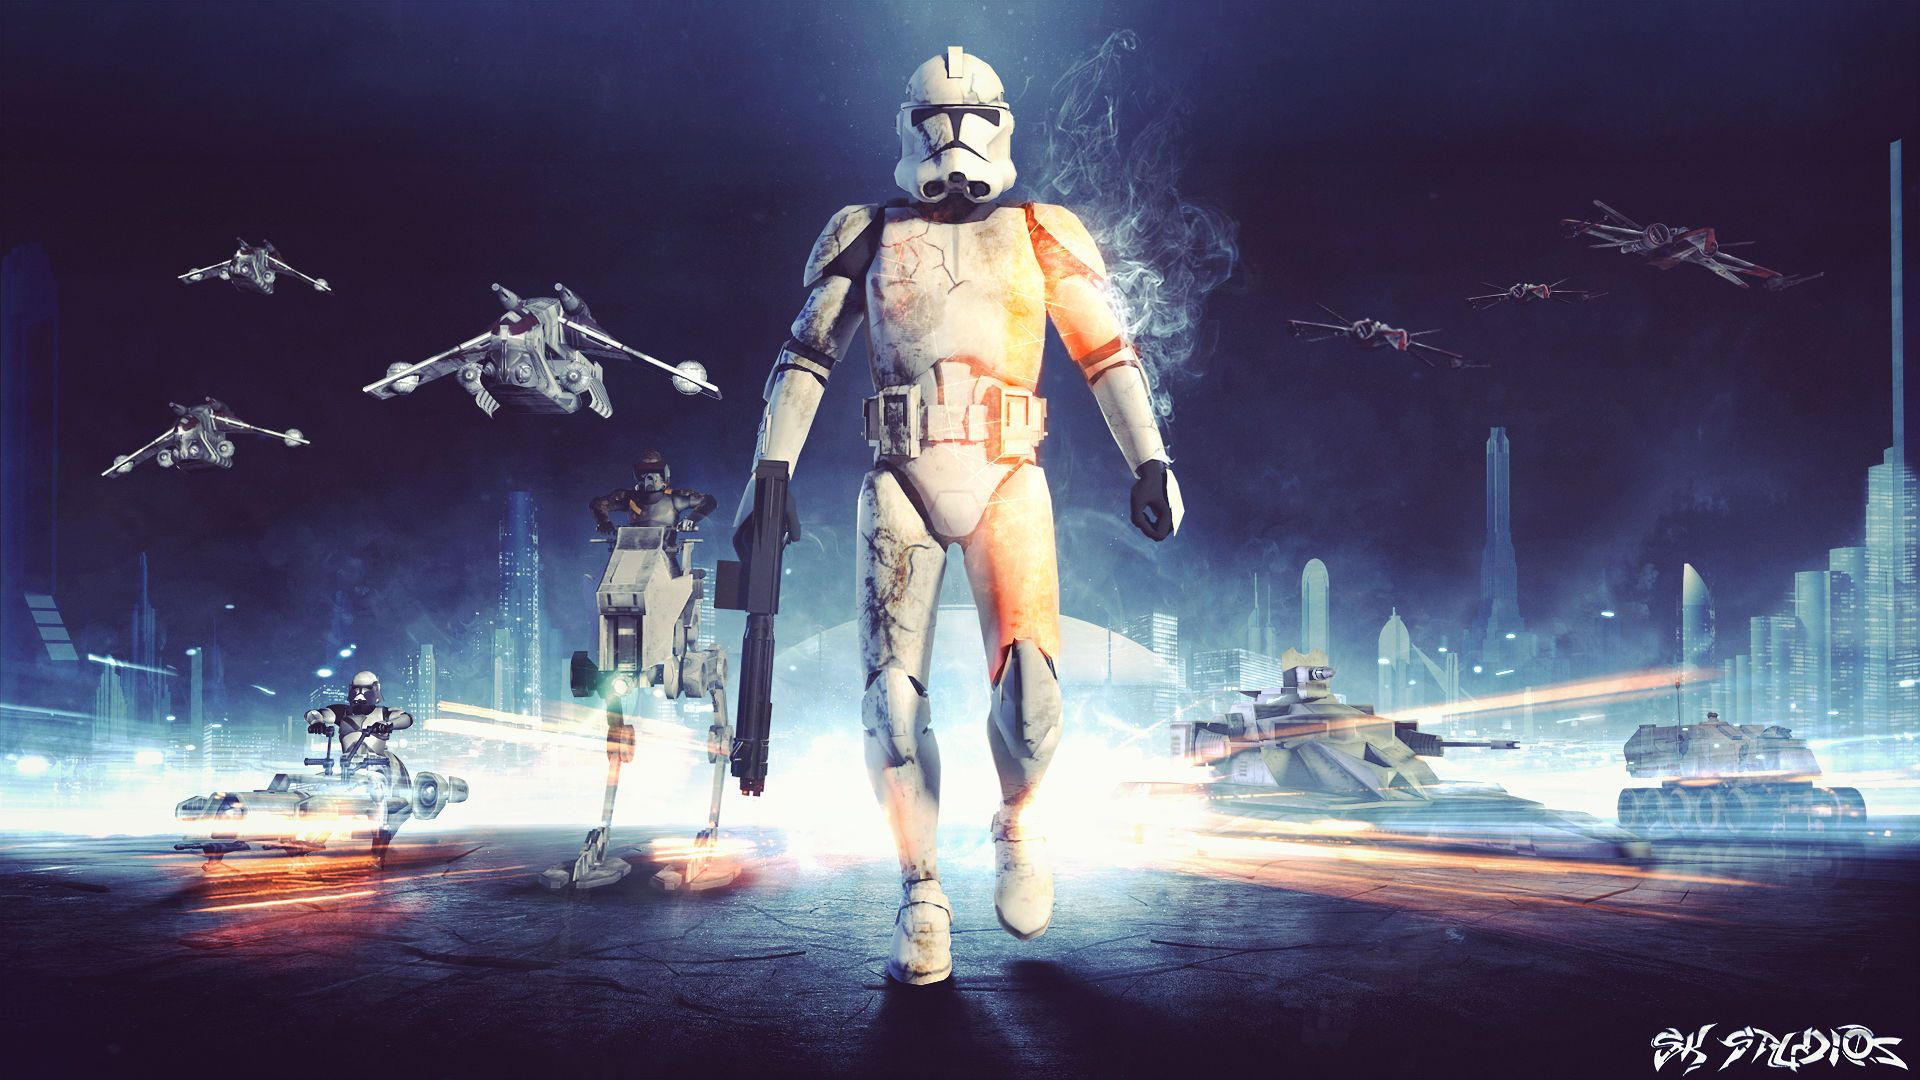 star wars battlefront 3: spoilers revealed by episode 7 concept